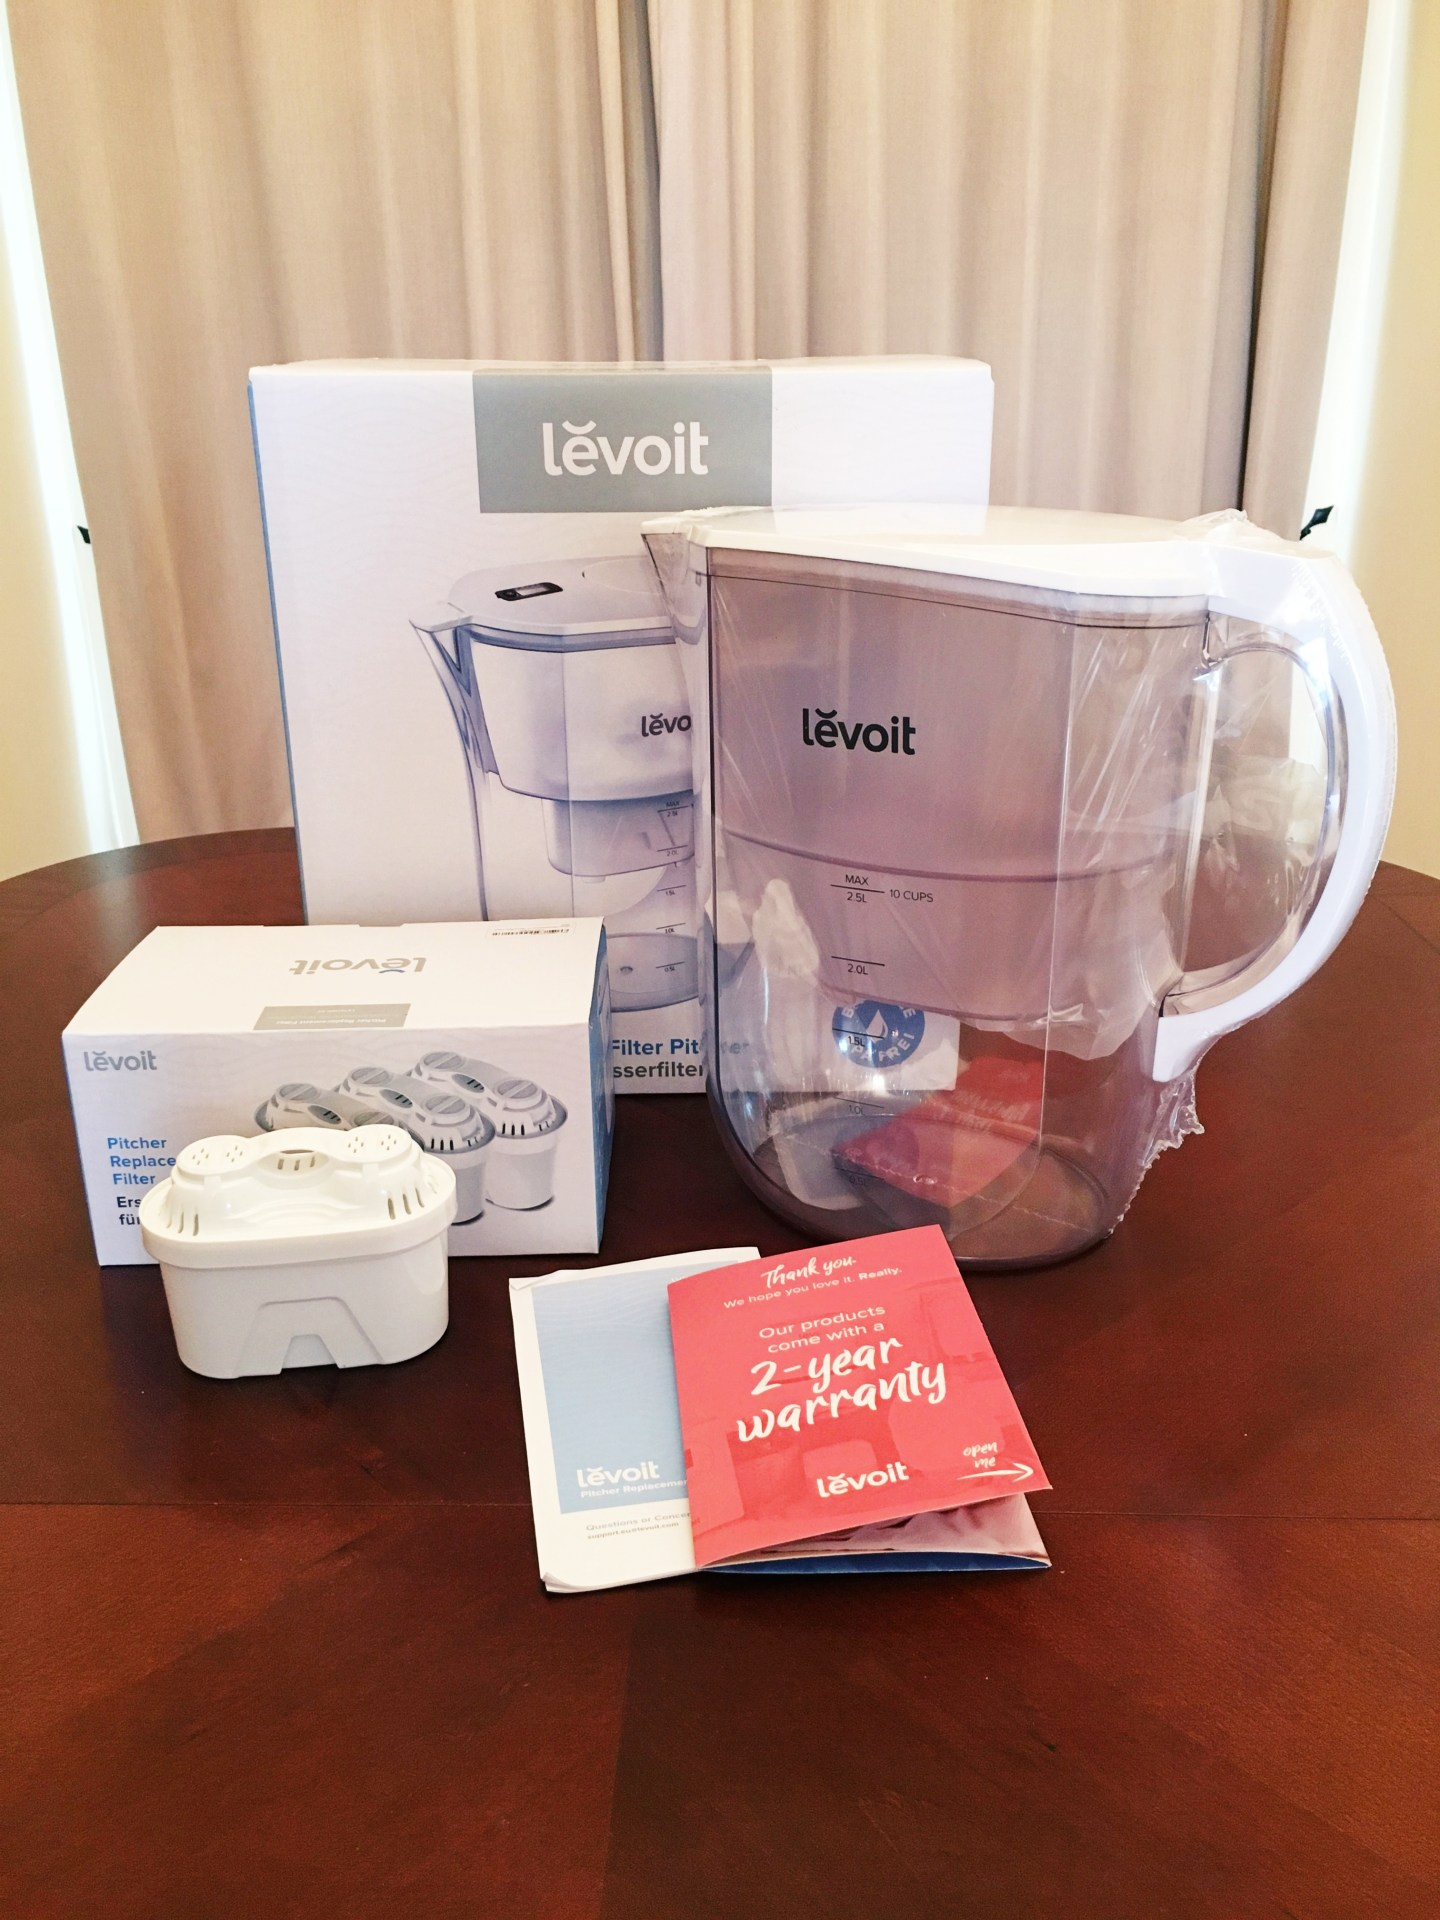 A photograph of the Levoit water filter jug sat on my kitchen table, with the box behind it and the filters and Instructions in front.